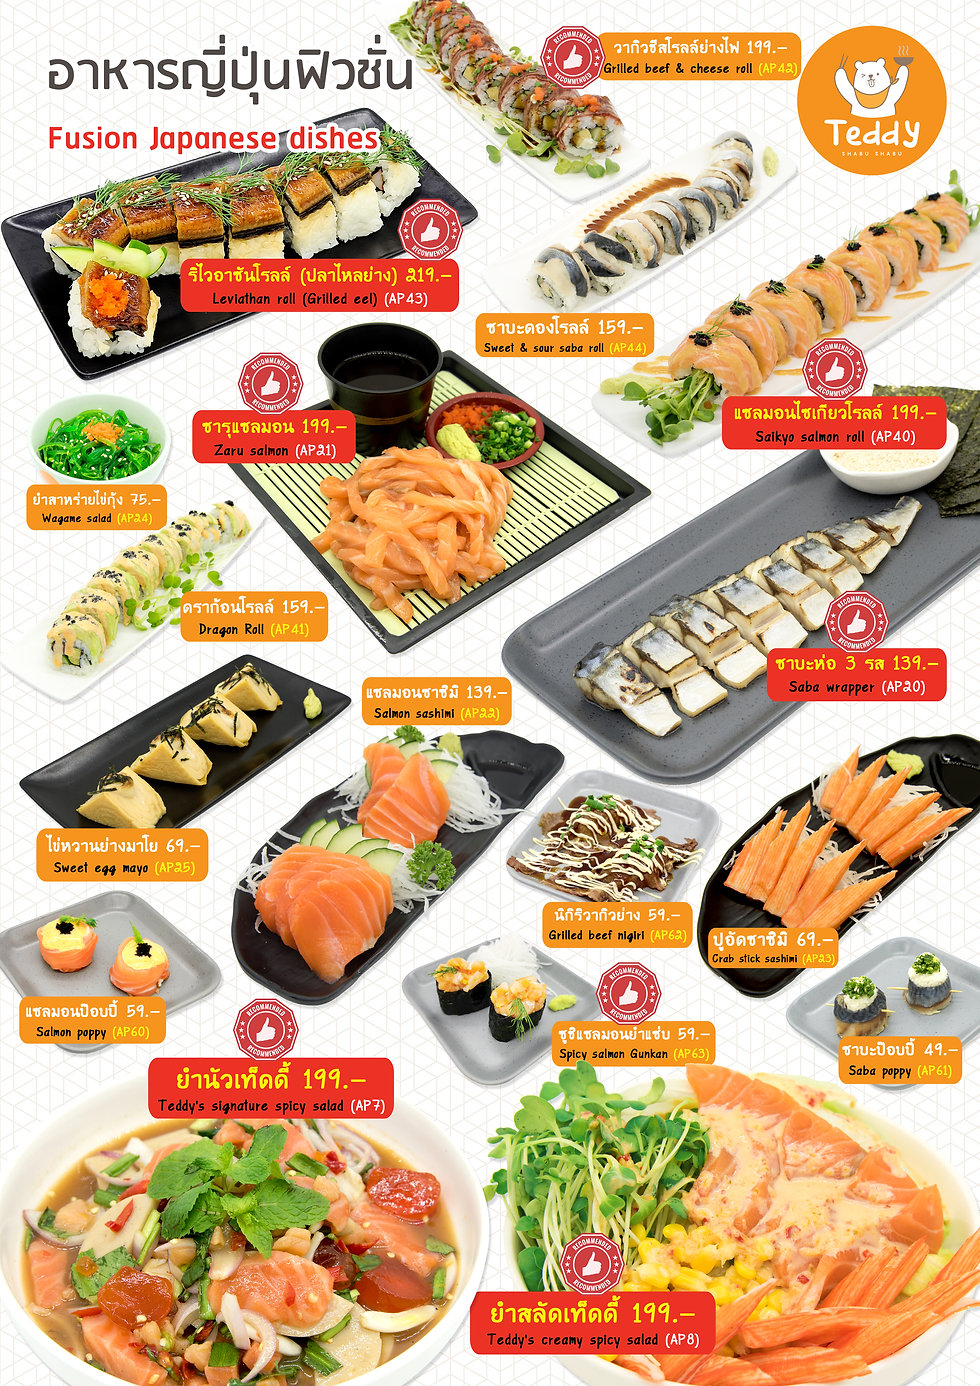 08-Fusion Japanese dishes.JPG